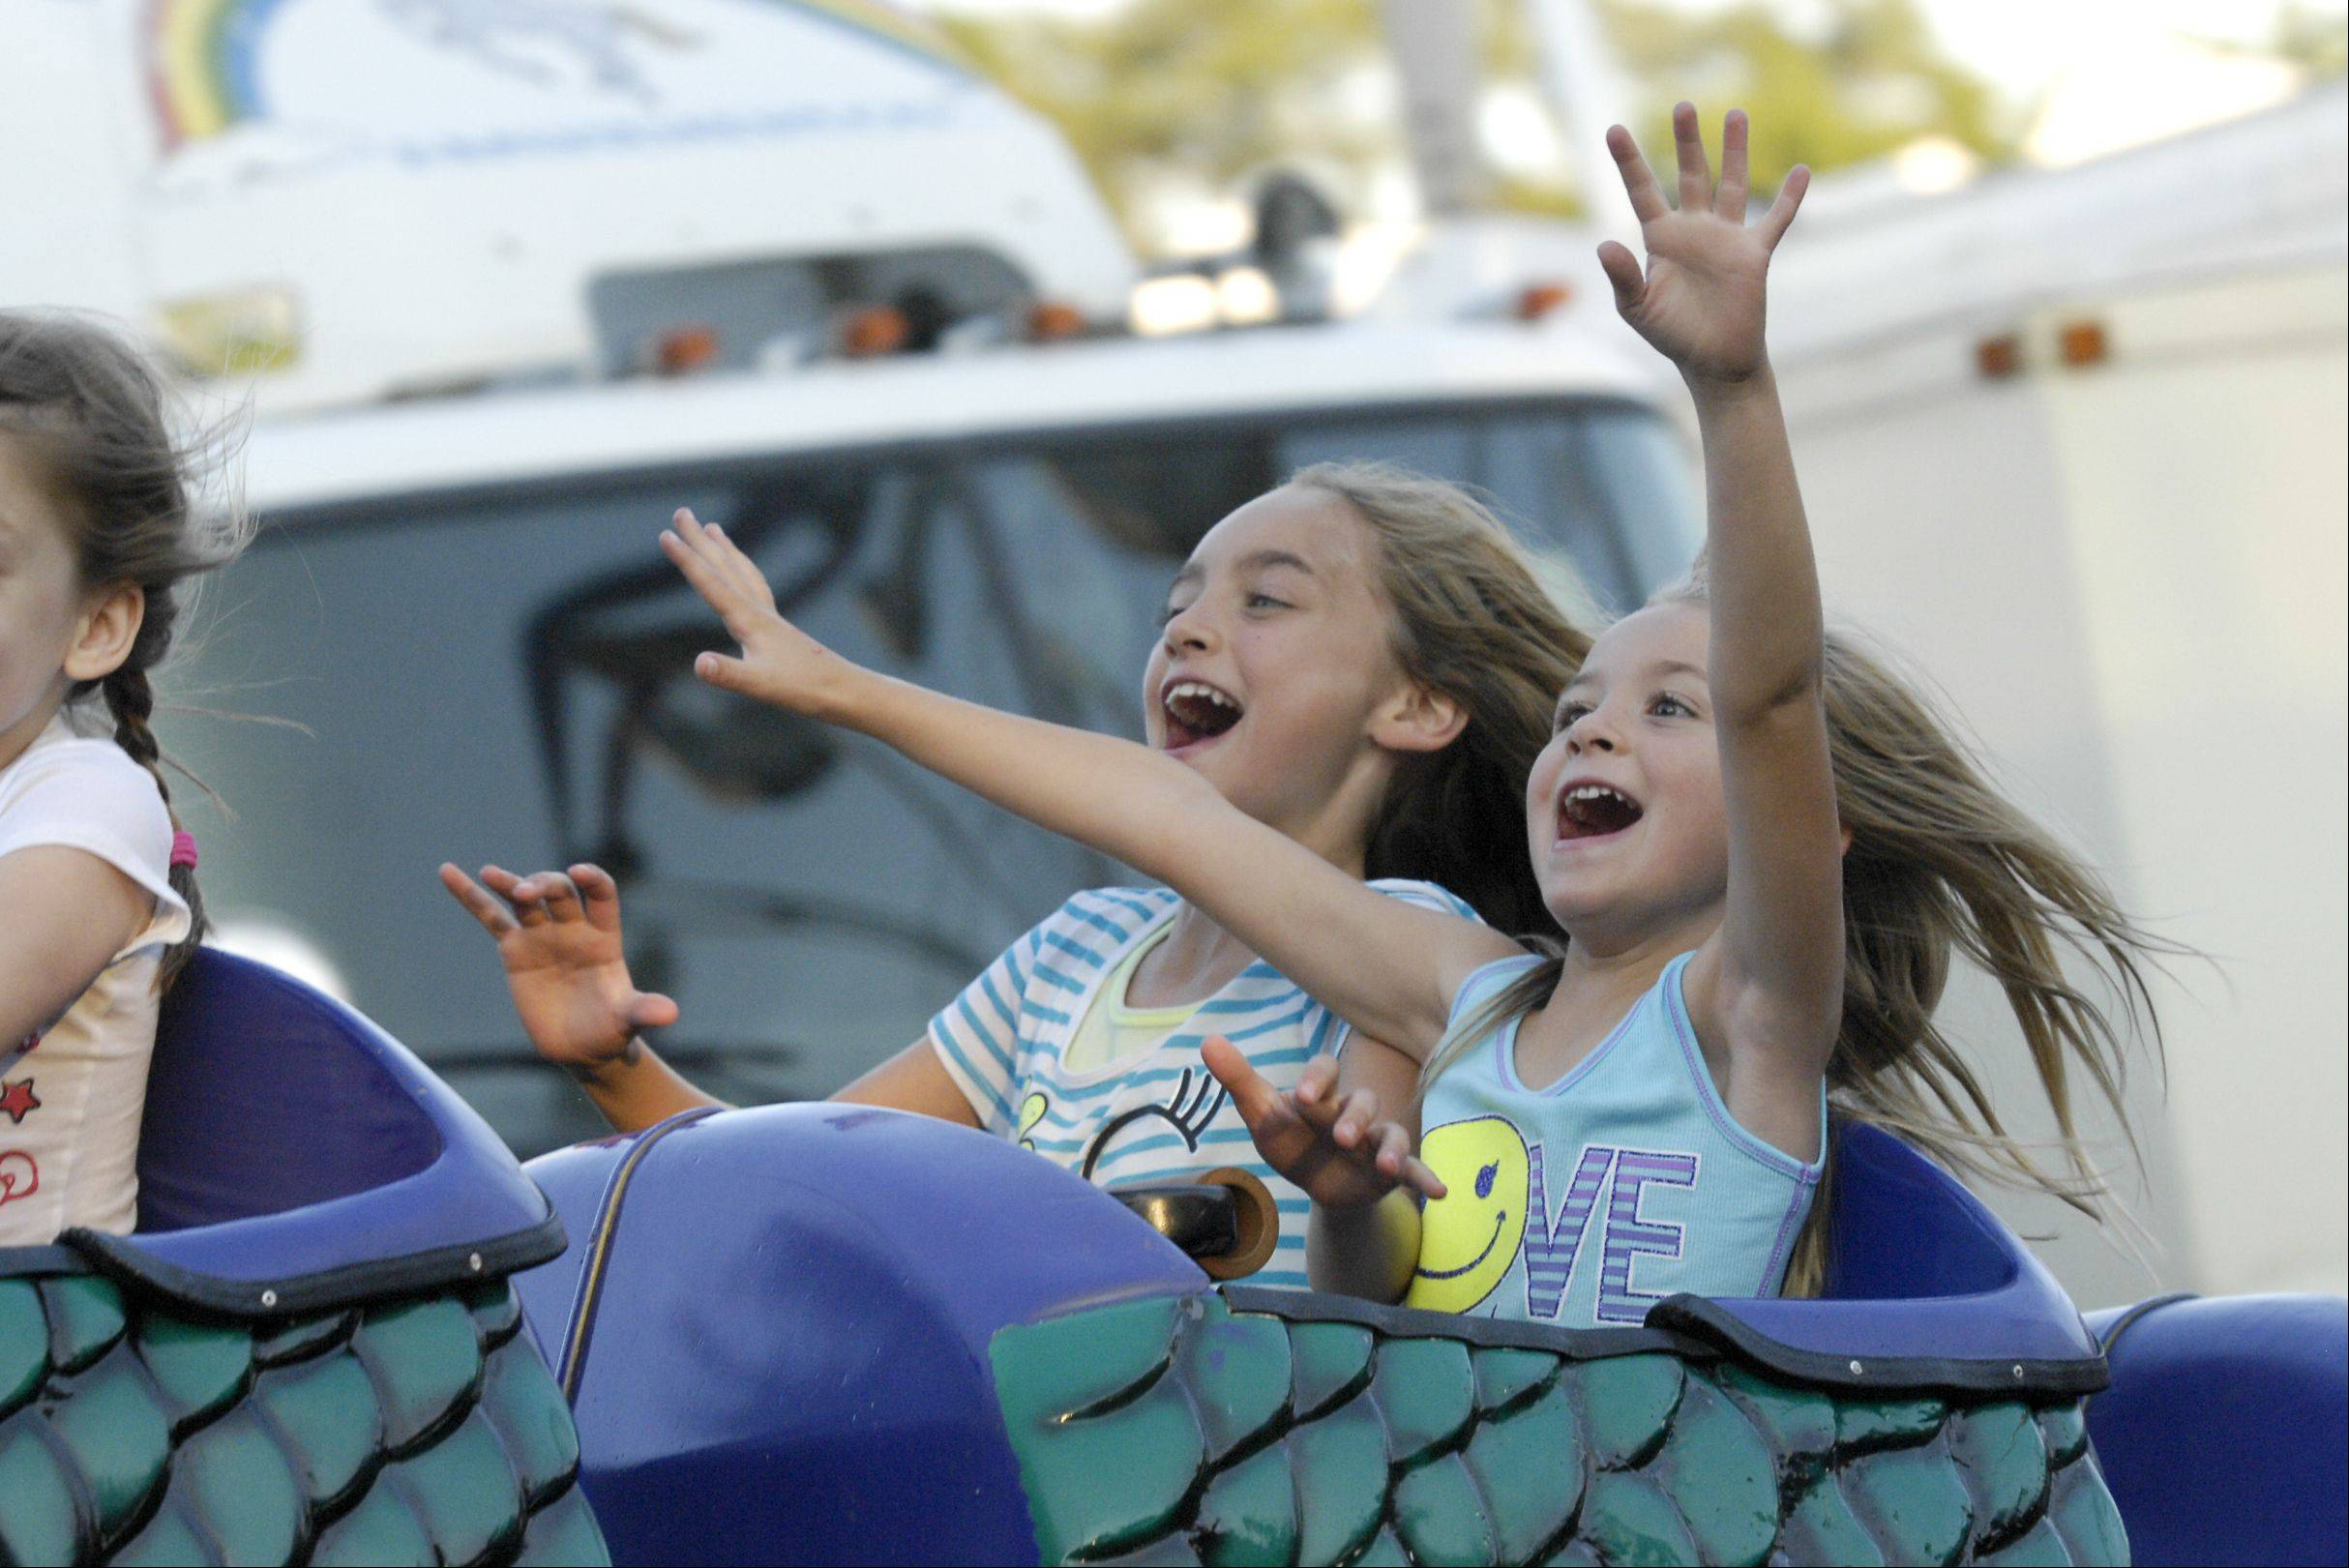 Bellastarr Jakresky, 9, and Jessie Ross, 5, of Roselle, ride the Dragon ride on the first day of the 2013 Itasca Fest, Thursday.